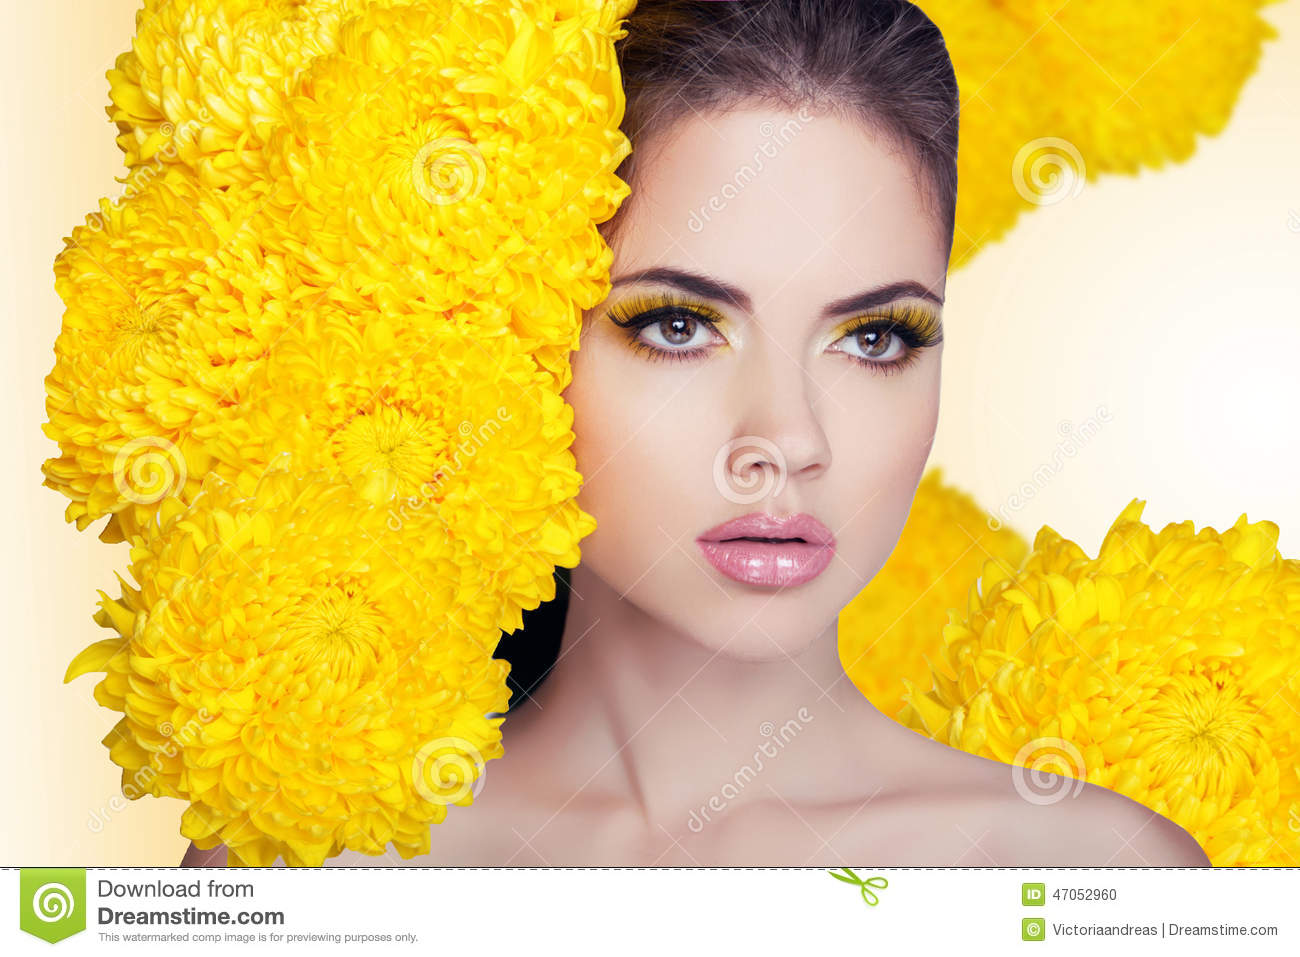 Fashion Beauty Model Girl With Flowers Hair. Makeup And